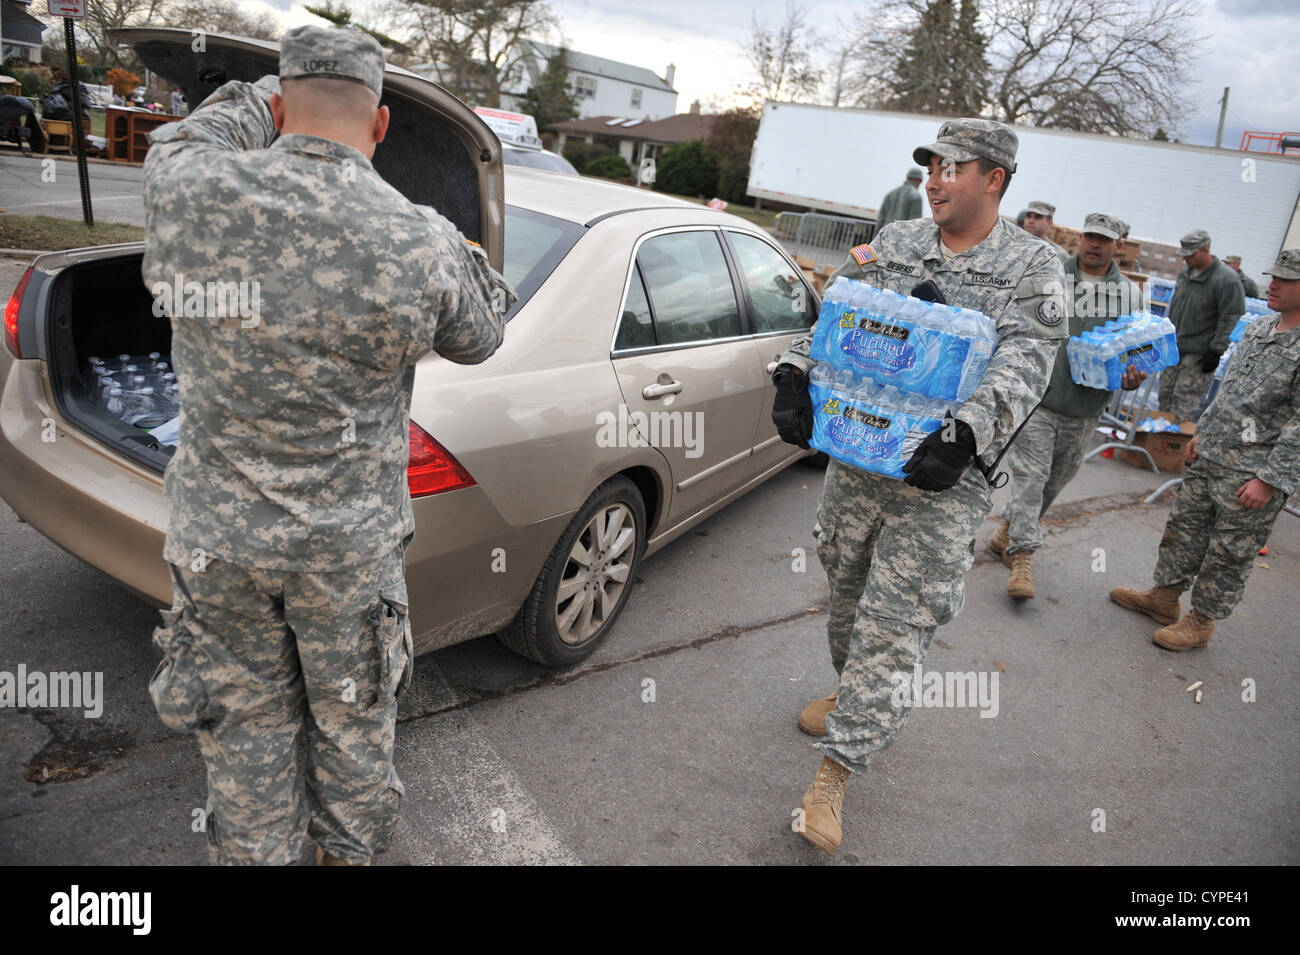 LONG BEACH, NY - Soldiers and Airmen with the New York Air National Guard provide relief support to Long Beach, Stock Photo